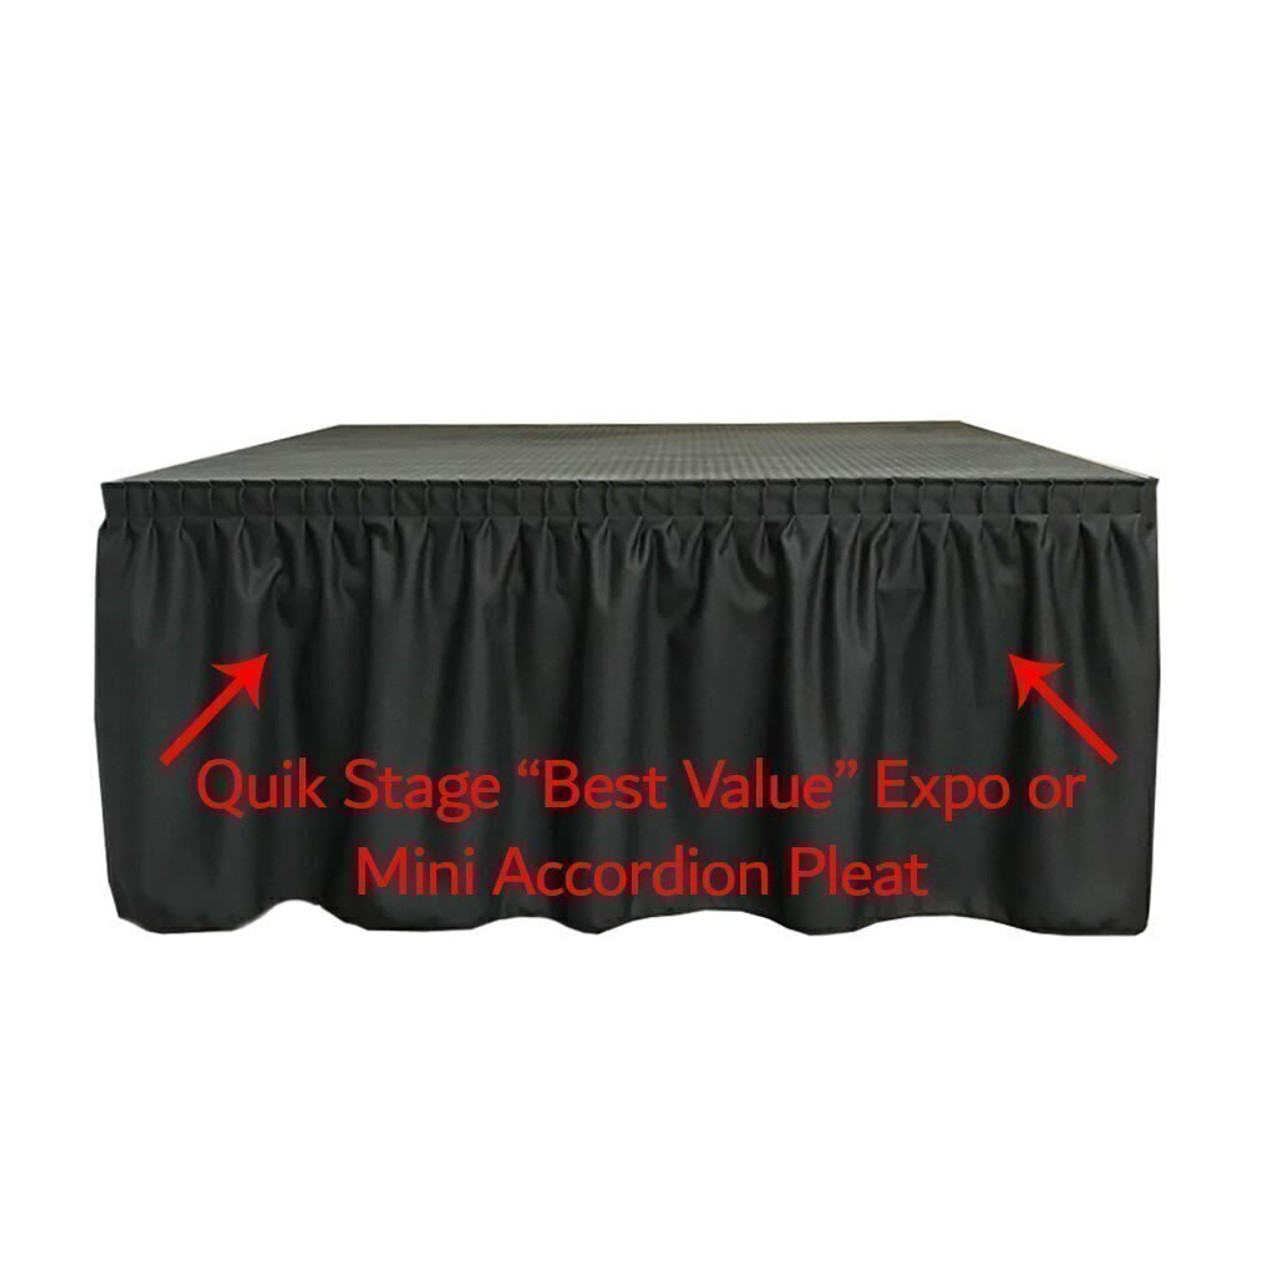 High Quality Quik Stage 4' x 48' High Portable Stage Package with Black Polyvinyl Non-Skid Surface. Additional Heights and Surfaces Available - Best Value Expo Pleat Stage Skirting